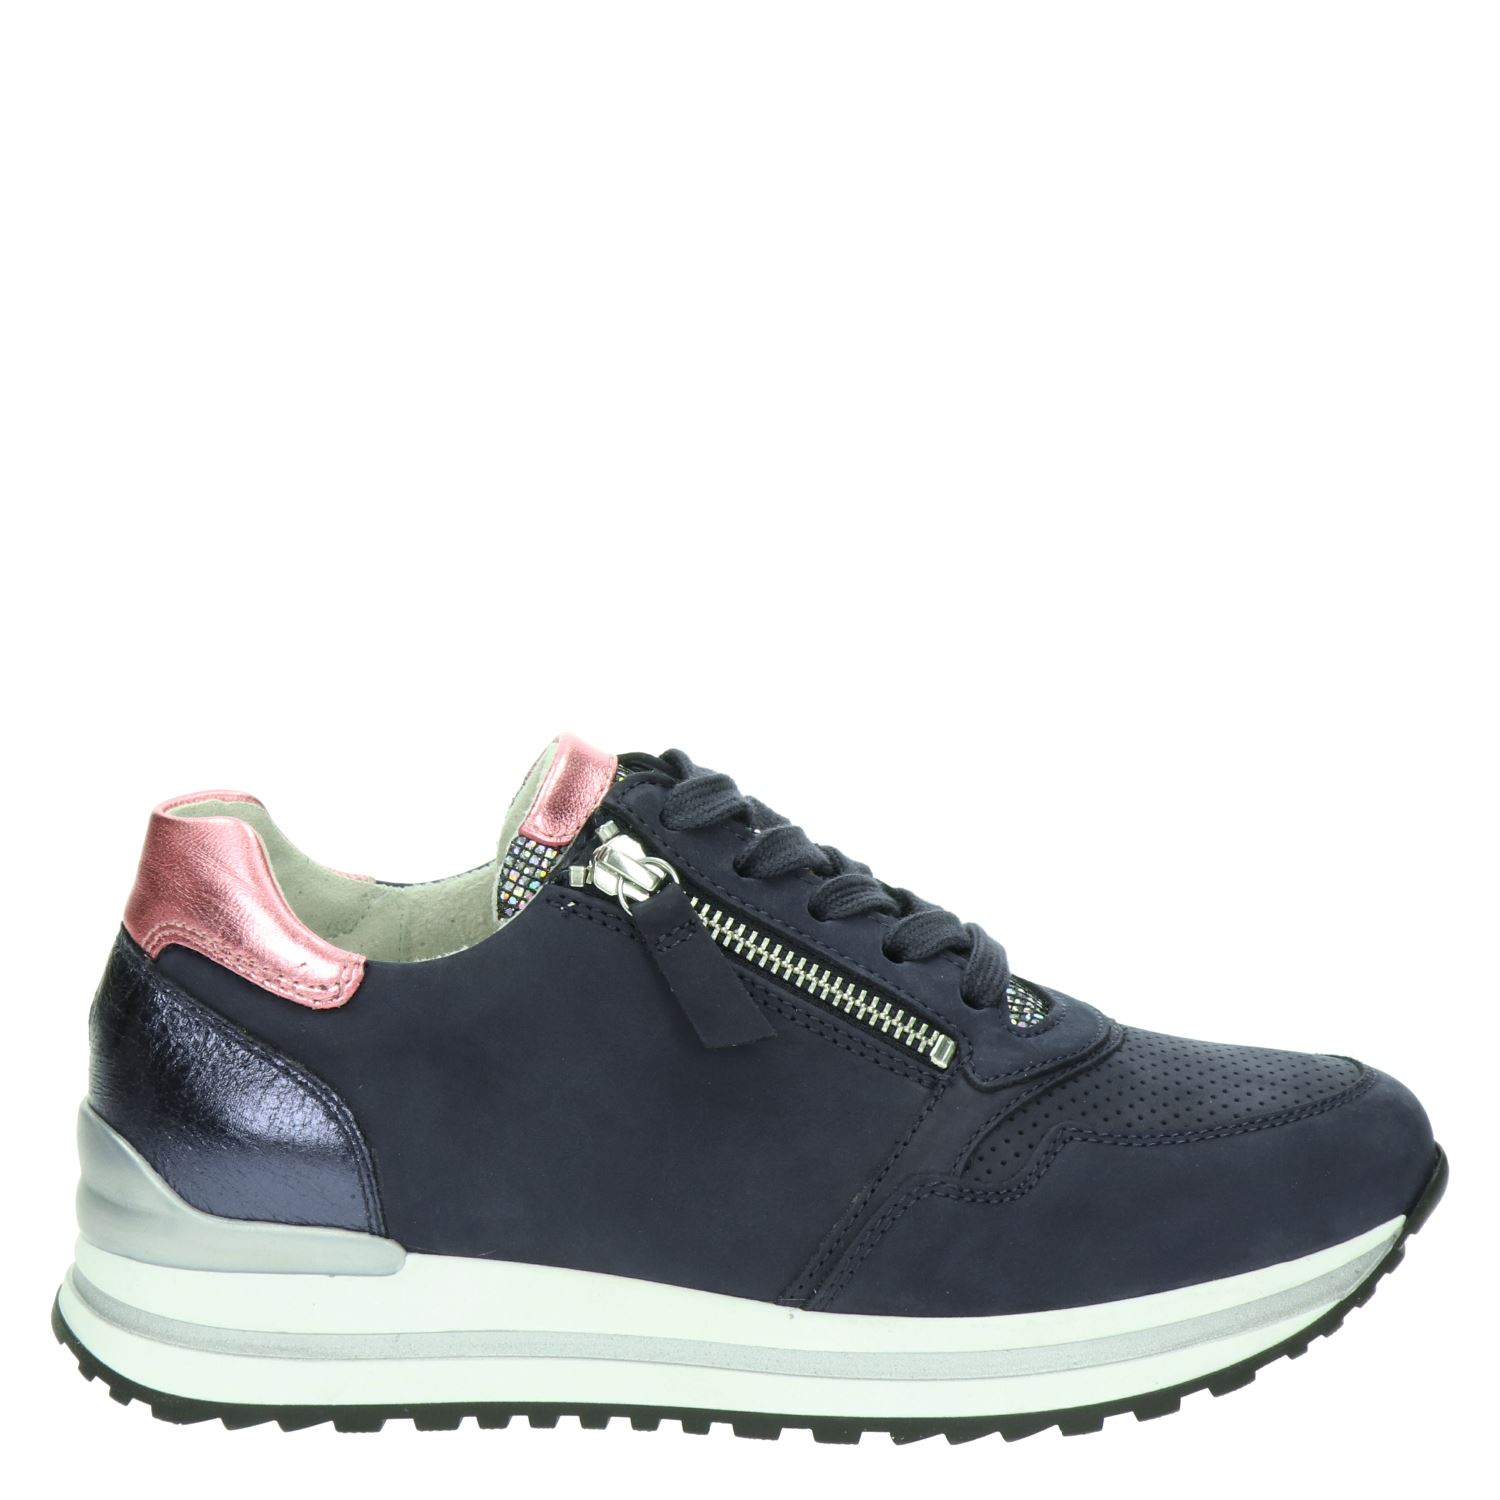 03327a6f618 Gabor dames lage sneakers blauw